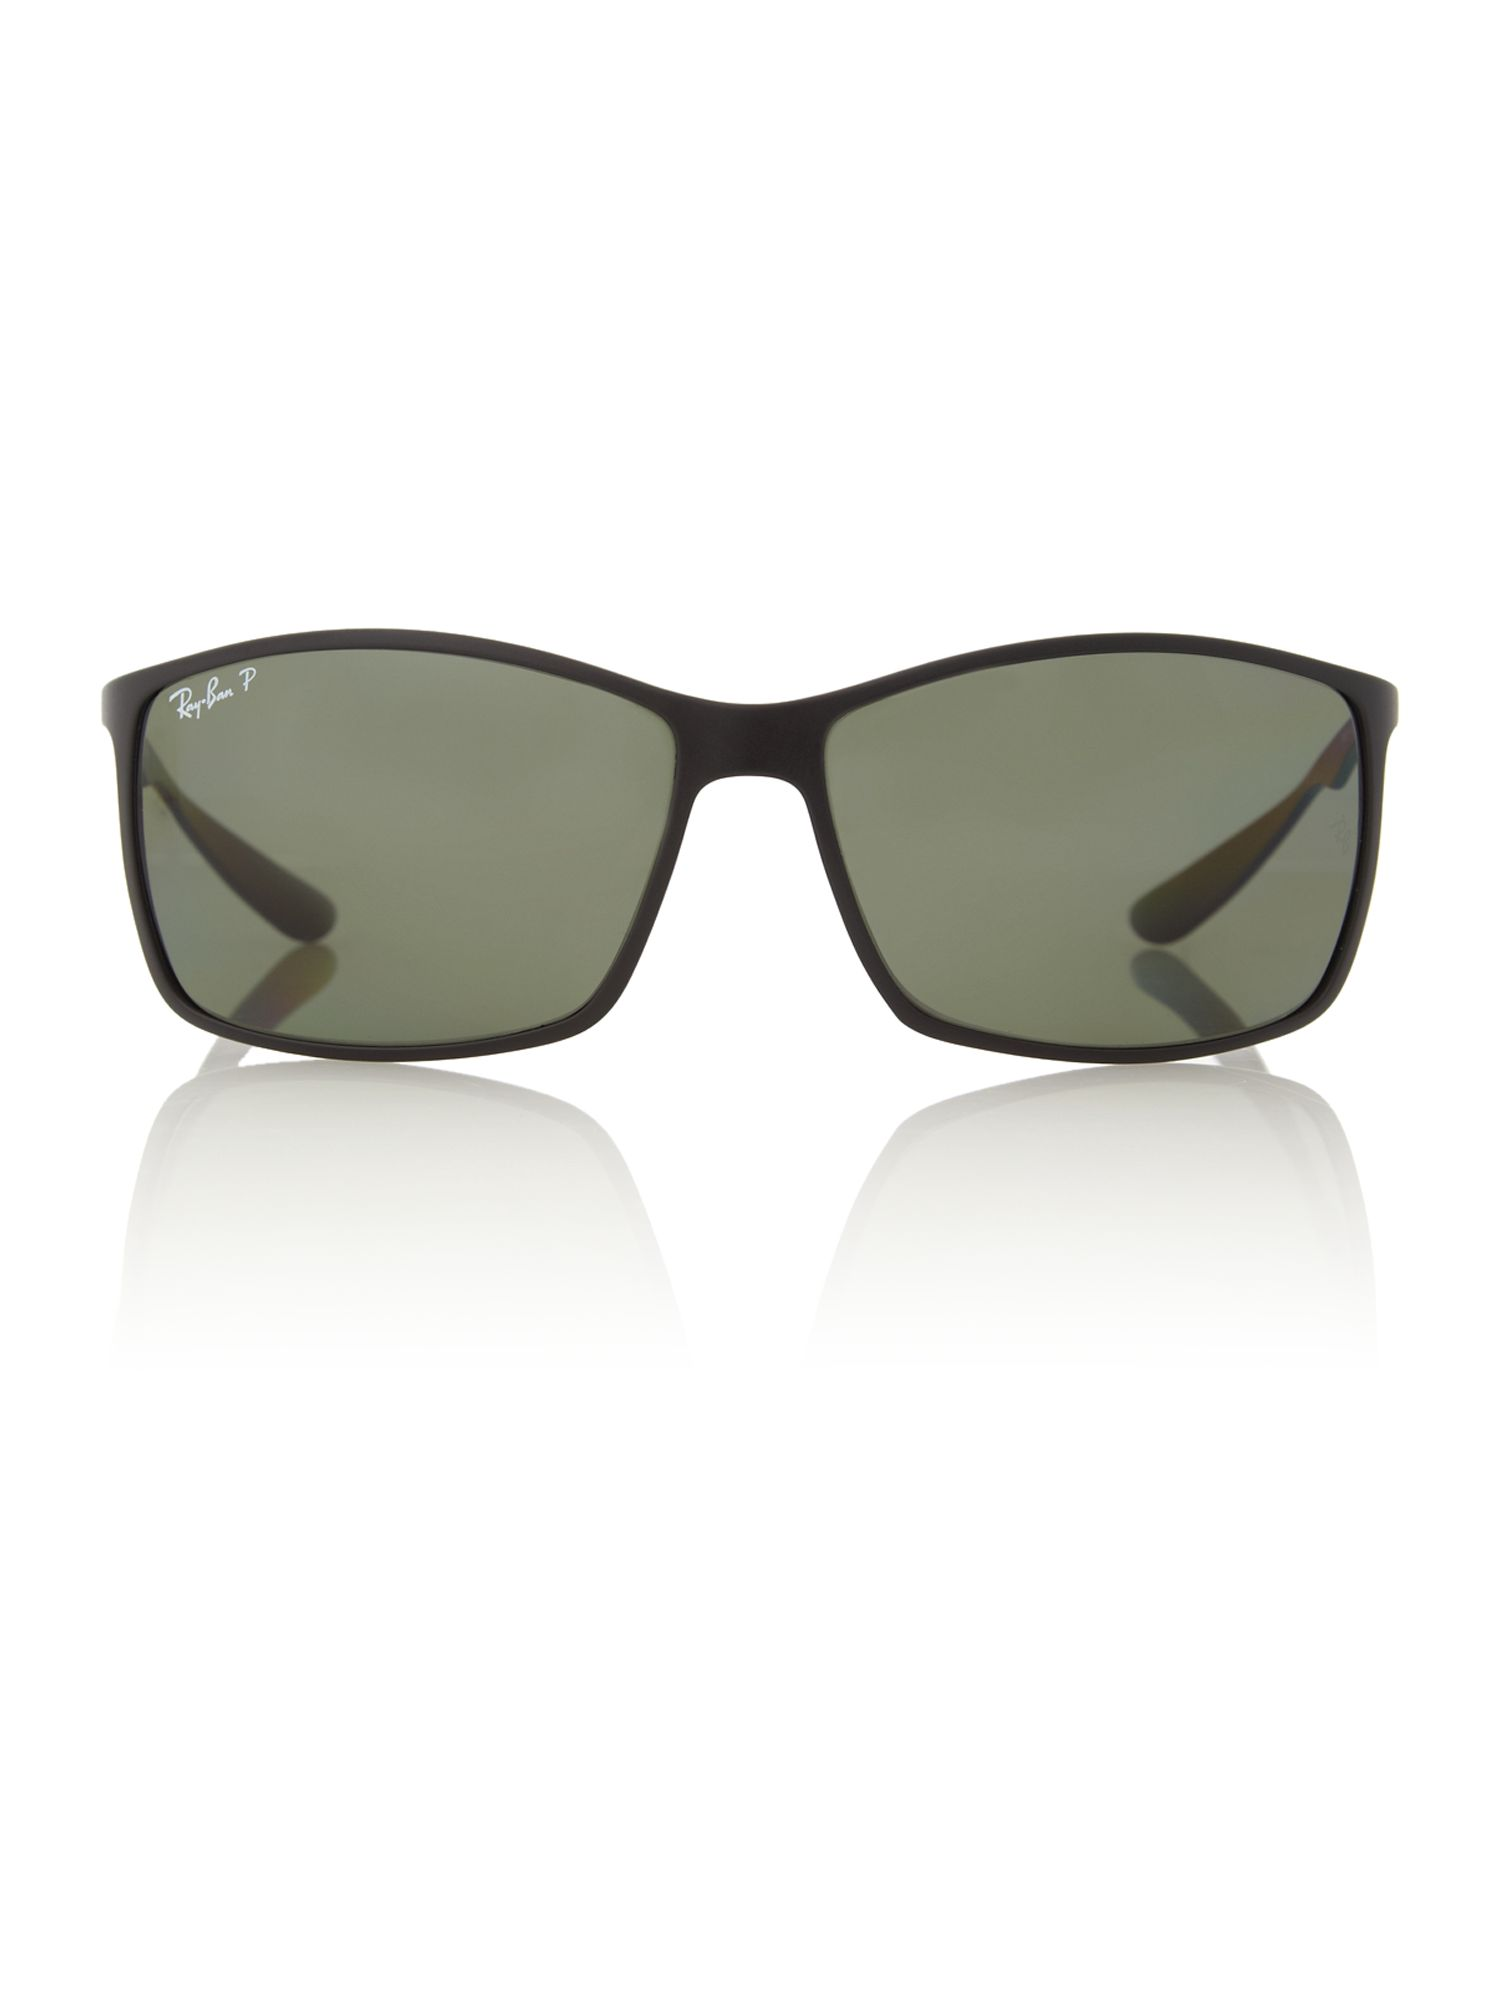 Mens RB4179 Liteforce Square sunglasses